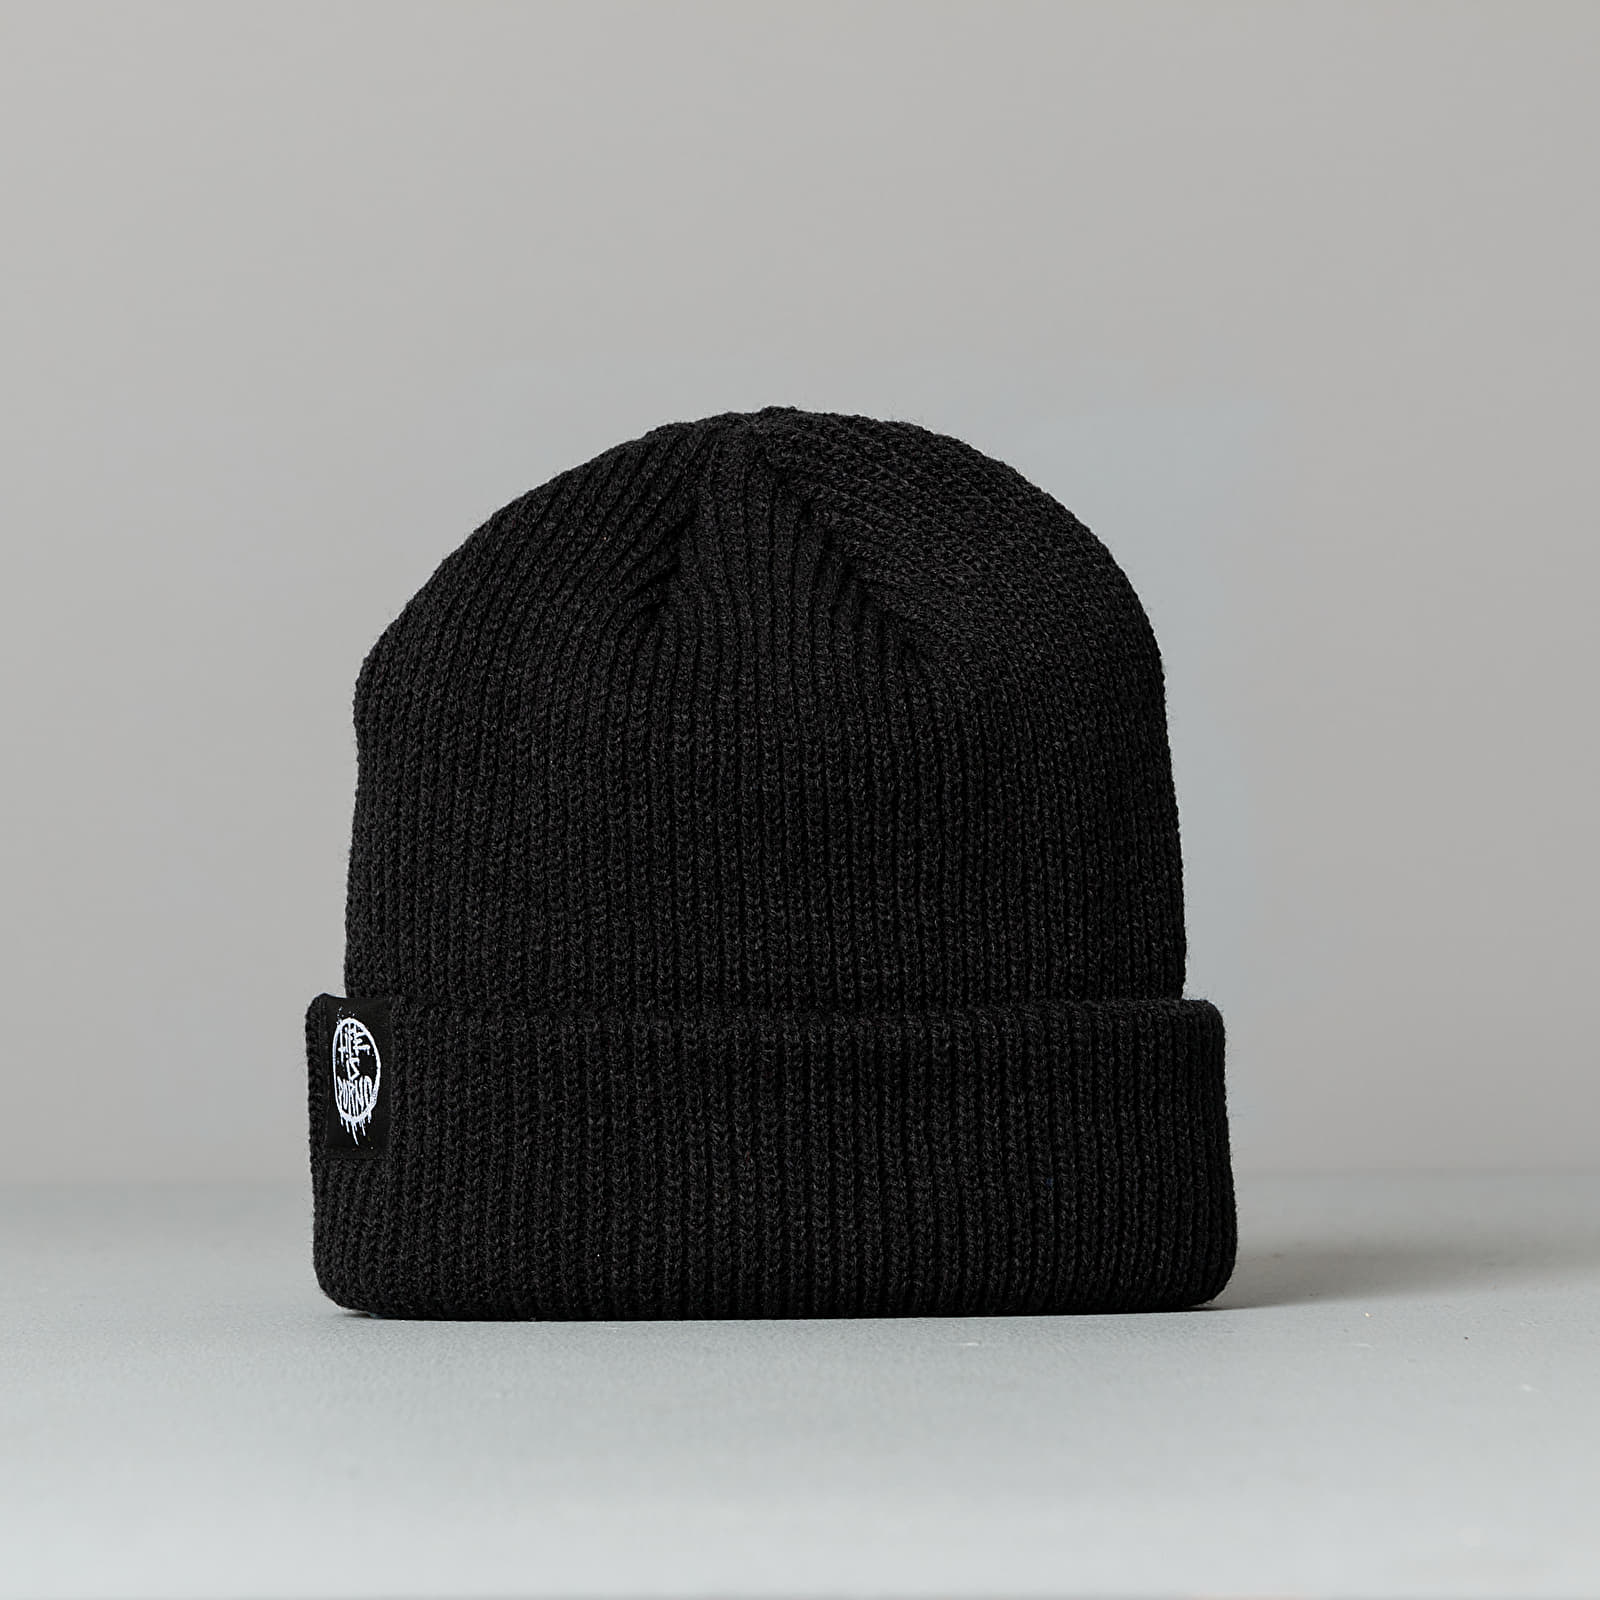 LIFE IS PORNO Short Fisherman Beanie